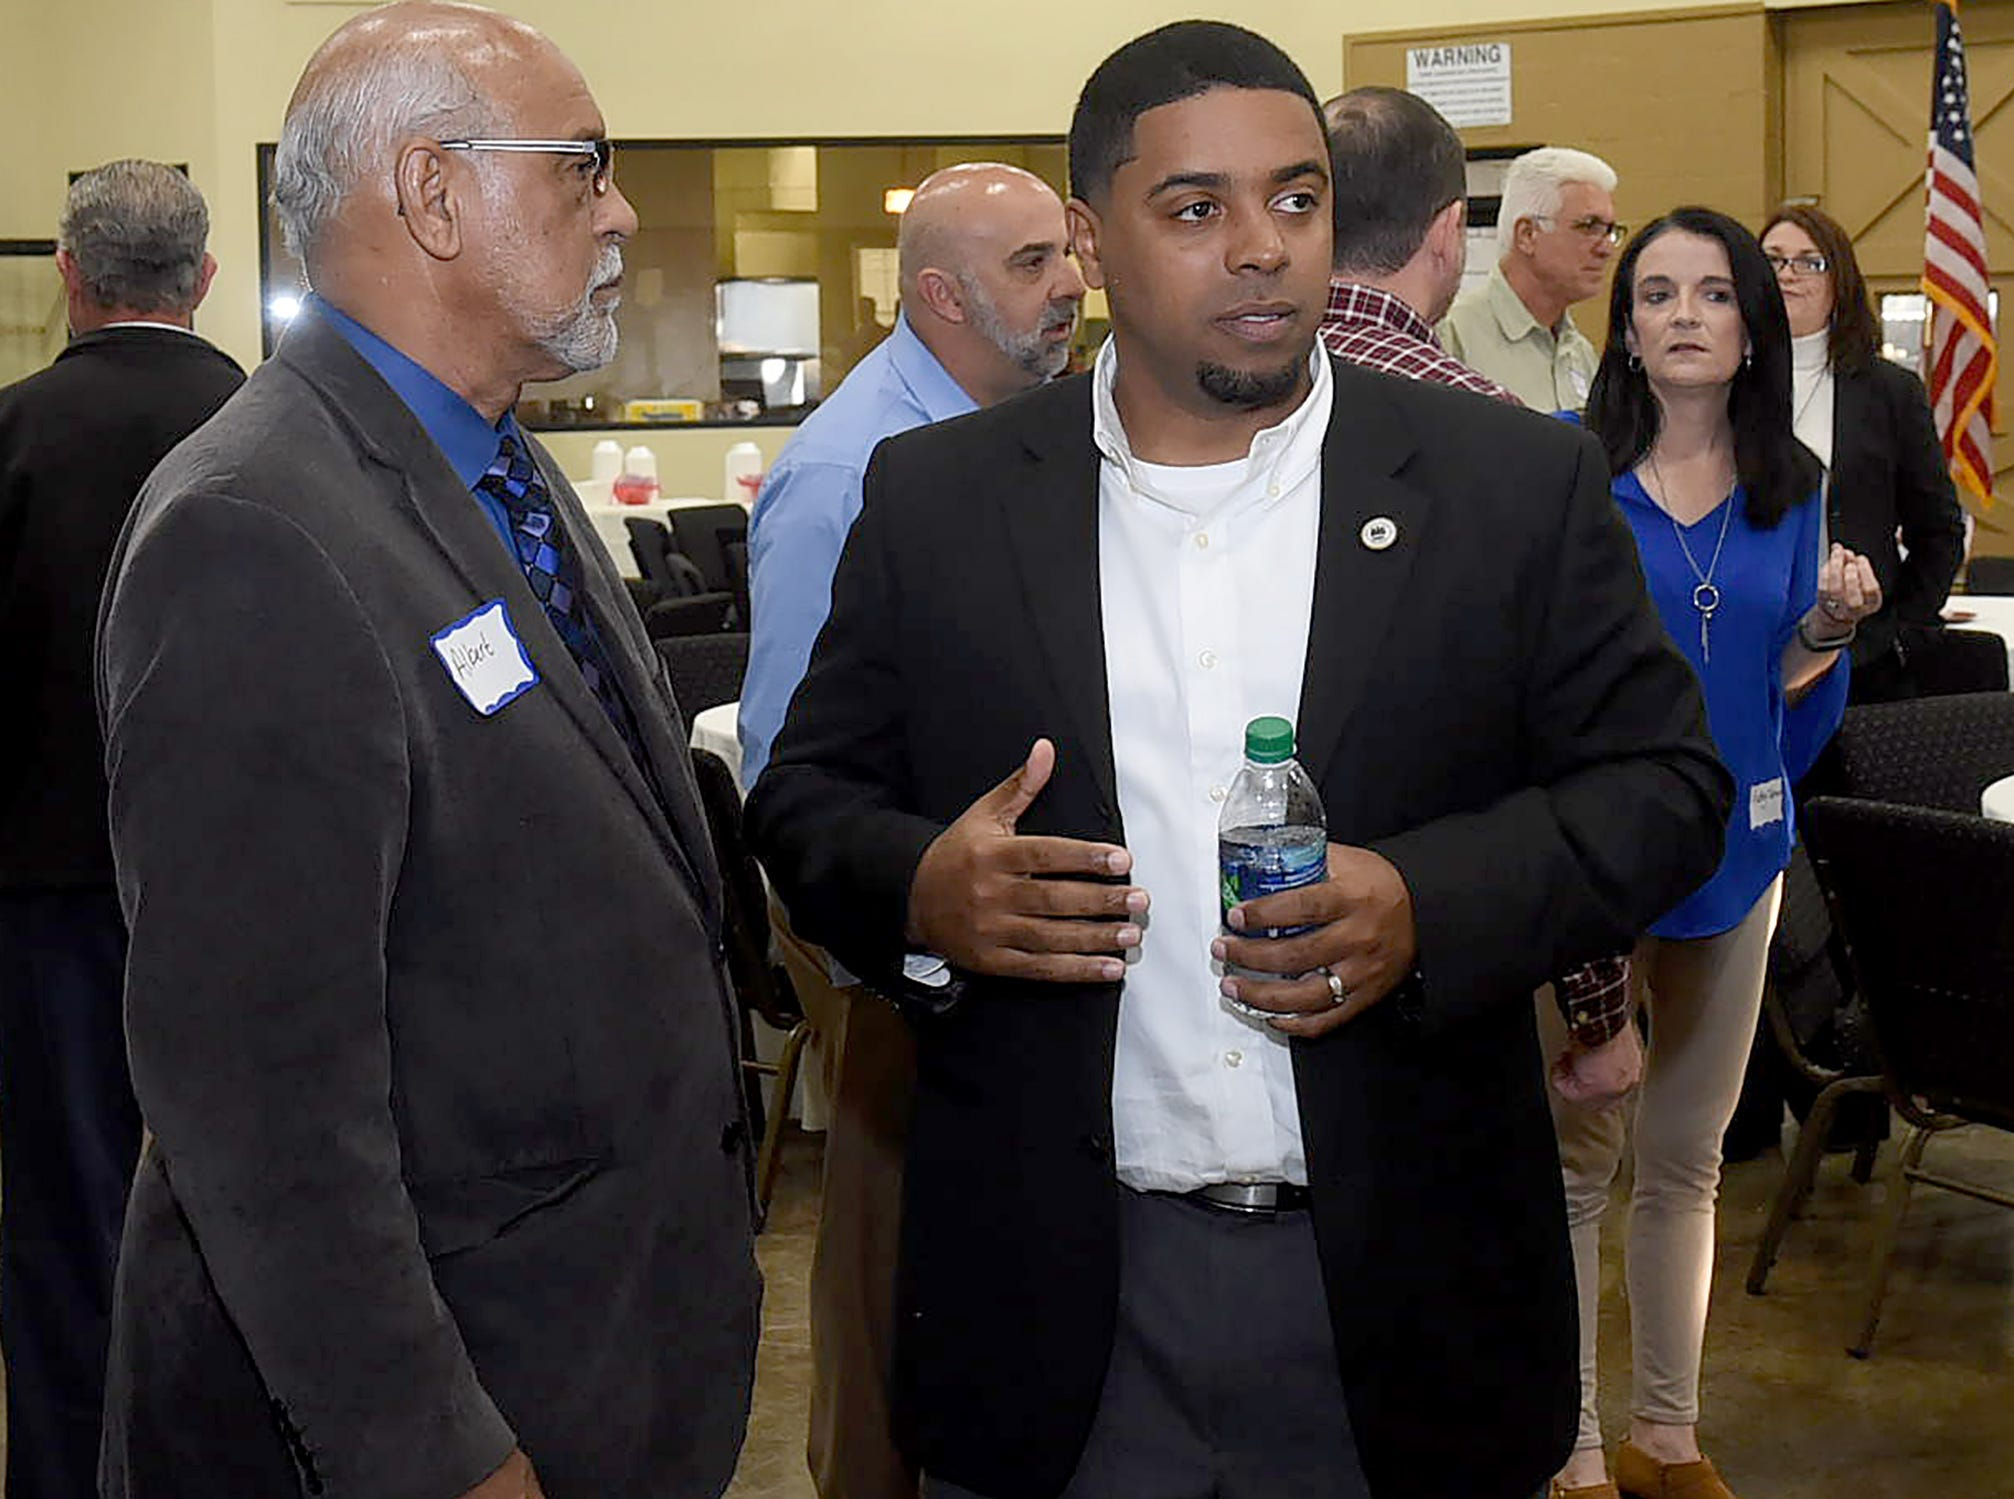 Fundraising event honoring Rep. Dustin Miller held Tuesday at the Equine Event Center in Opelousas.